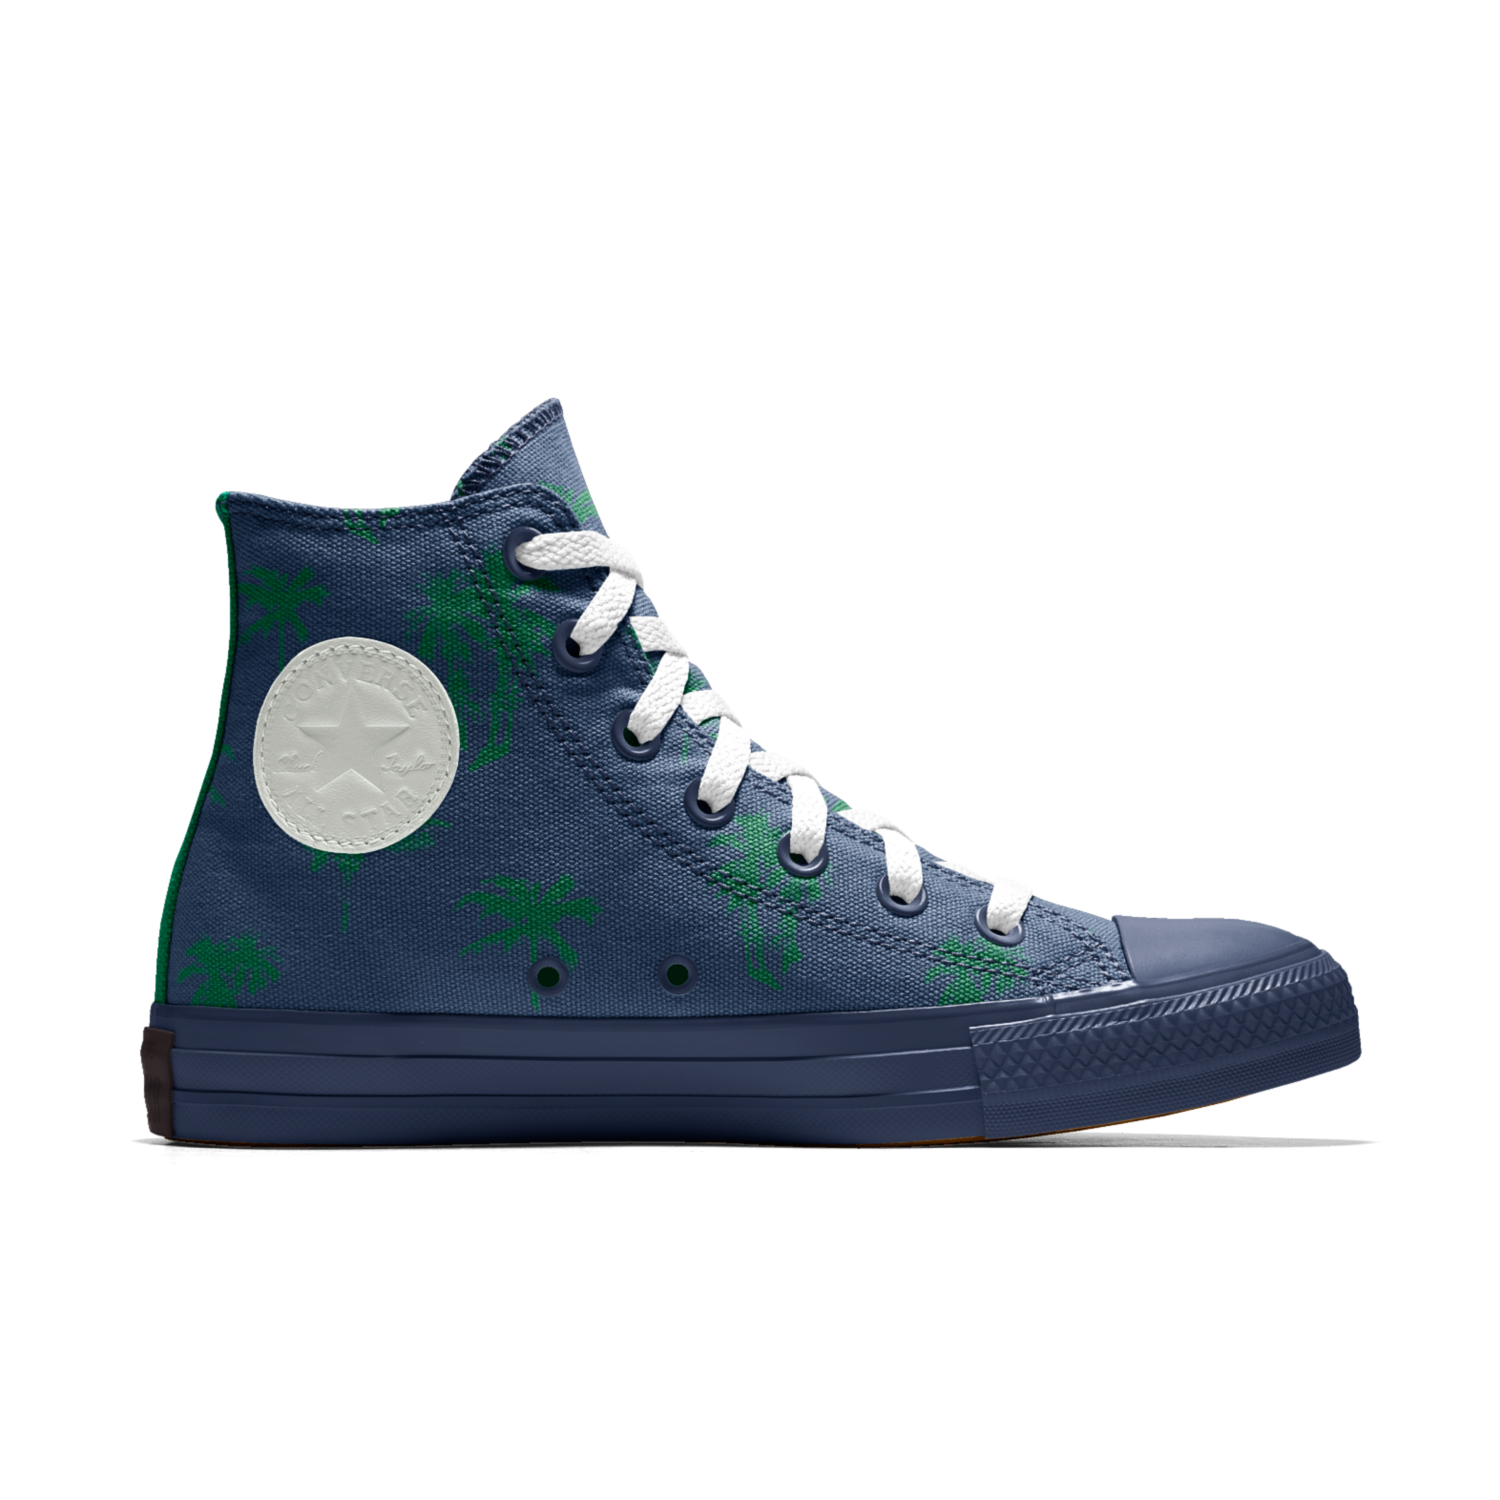 147117c2955b49 The Converse Custom Chuck Taylor All Star High Top Shoe in 2019 ...